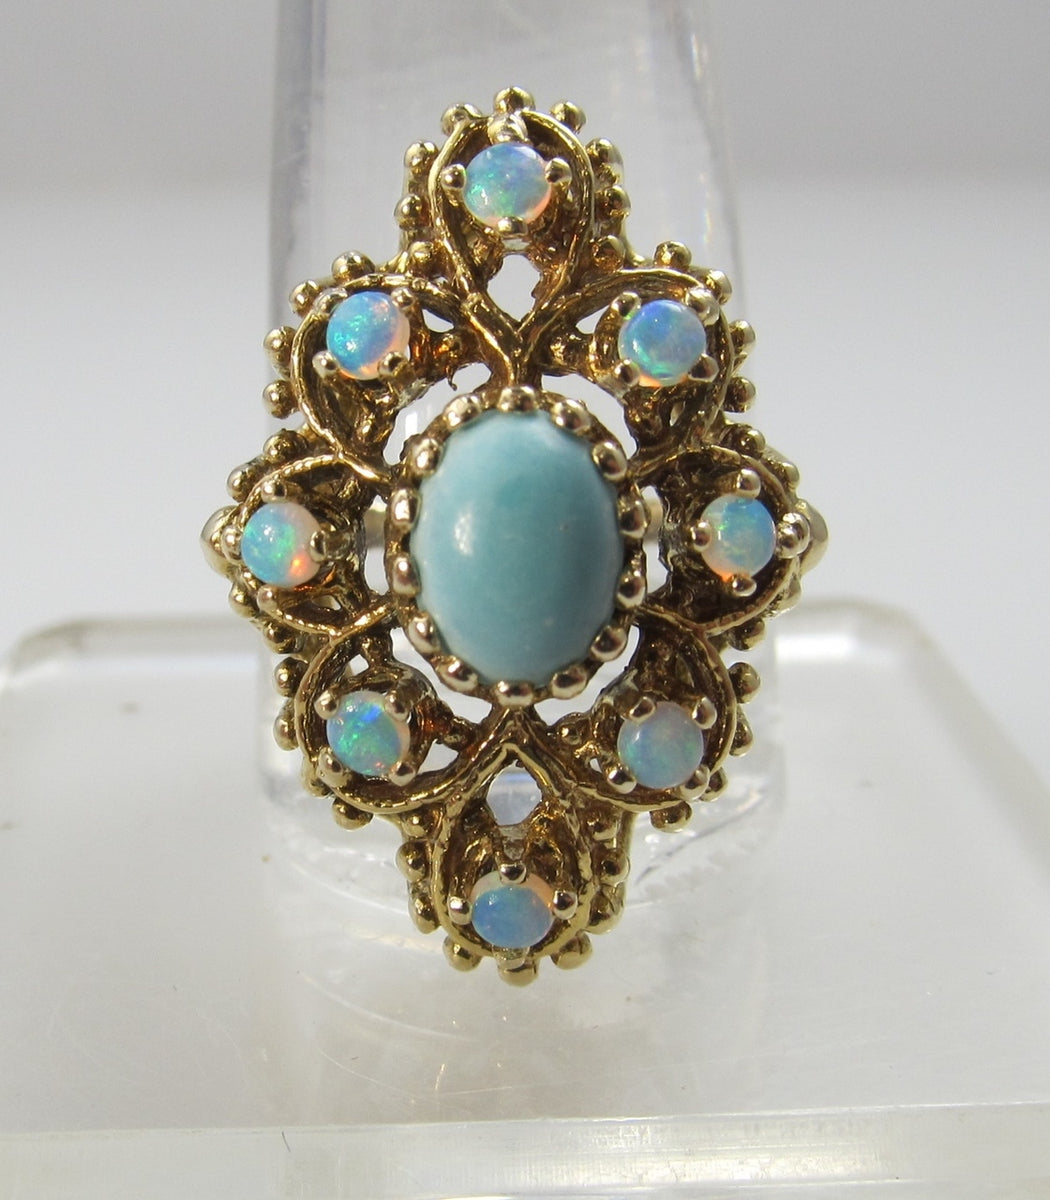 Vintage 14k Gold Ring With Opals And Turquoise